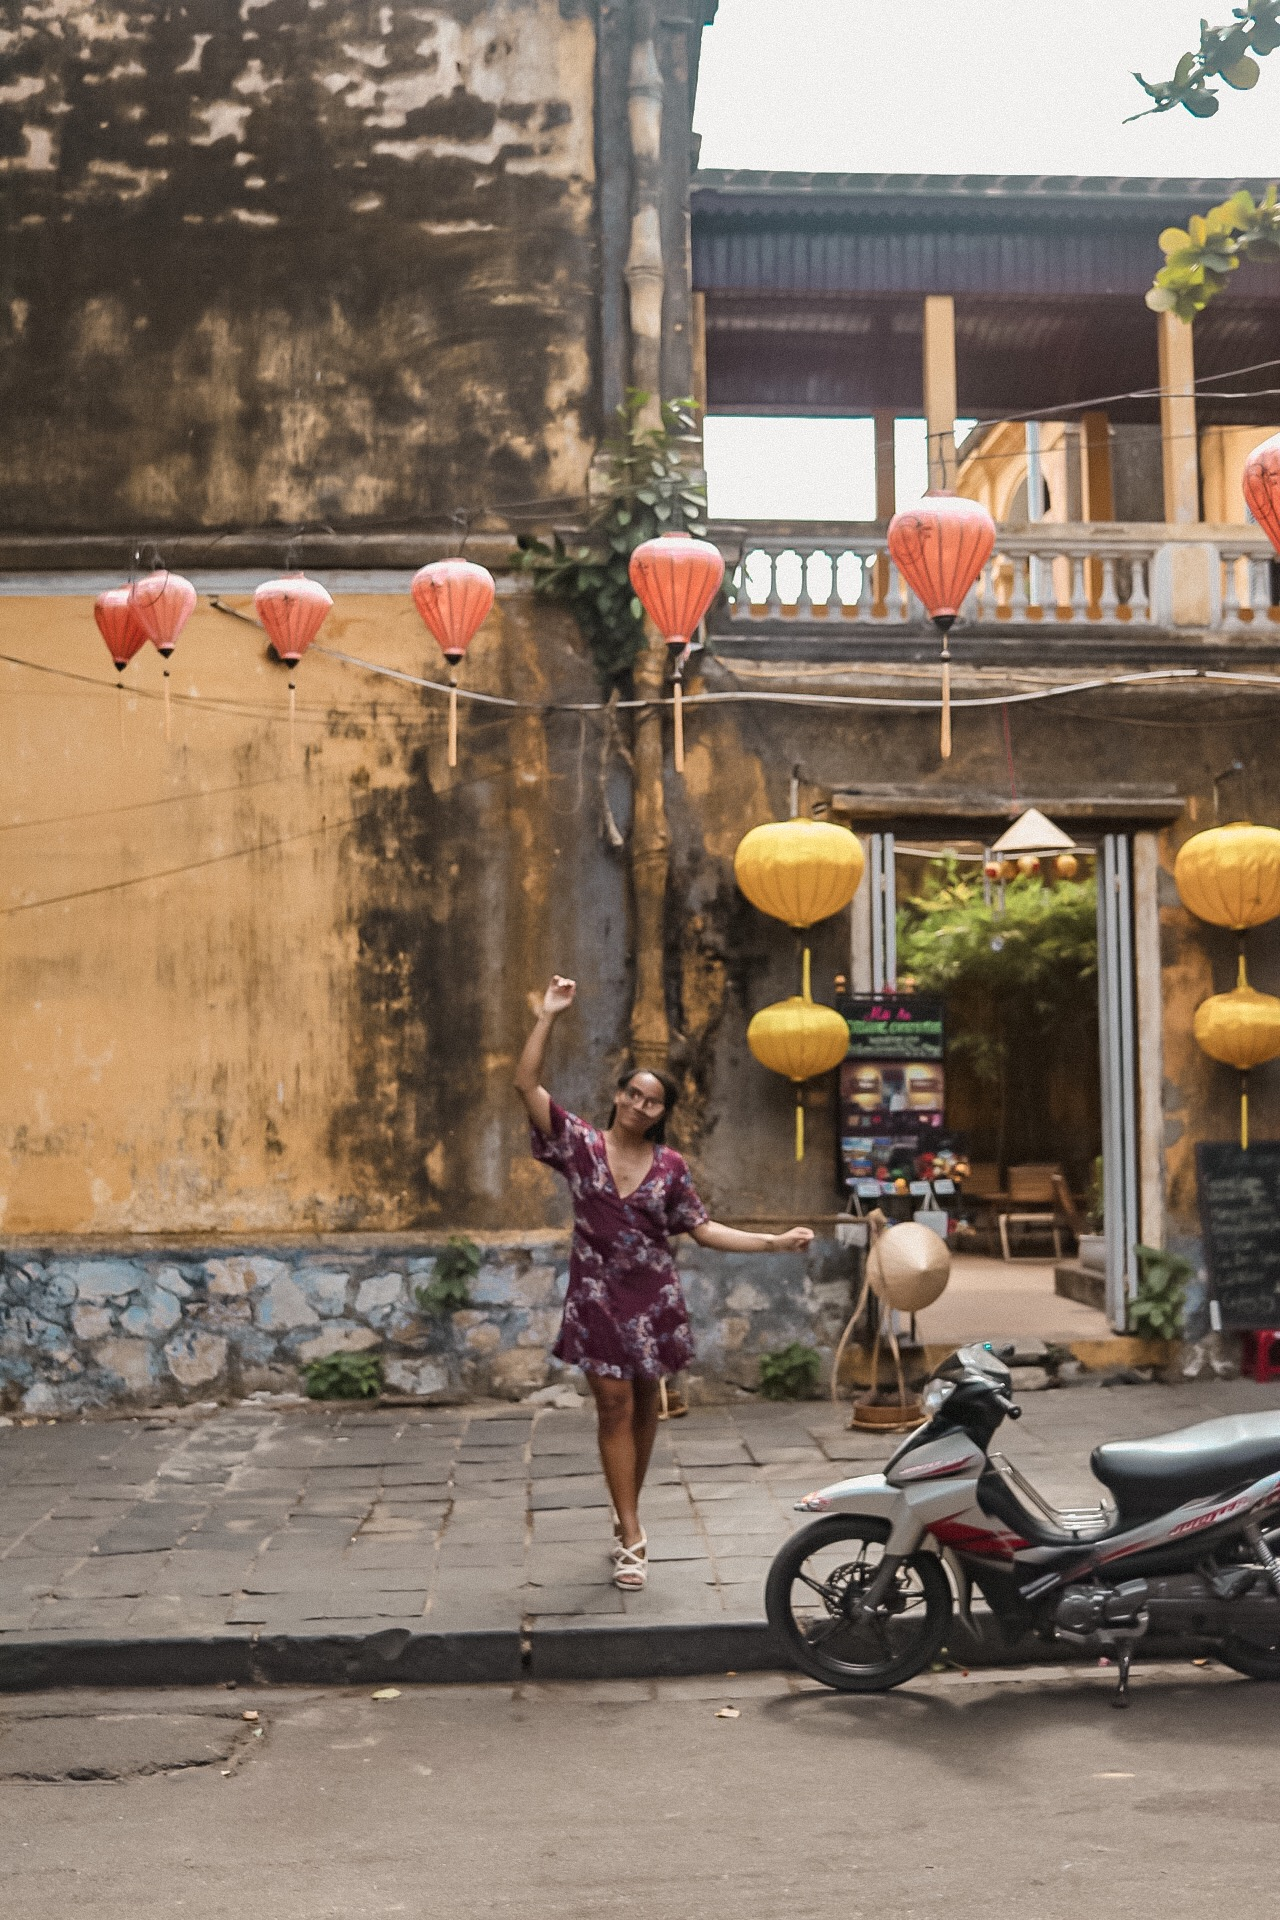 Illustrated by Sade - Yellow-painted building and lanterns in Hoi An, Vietnam